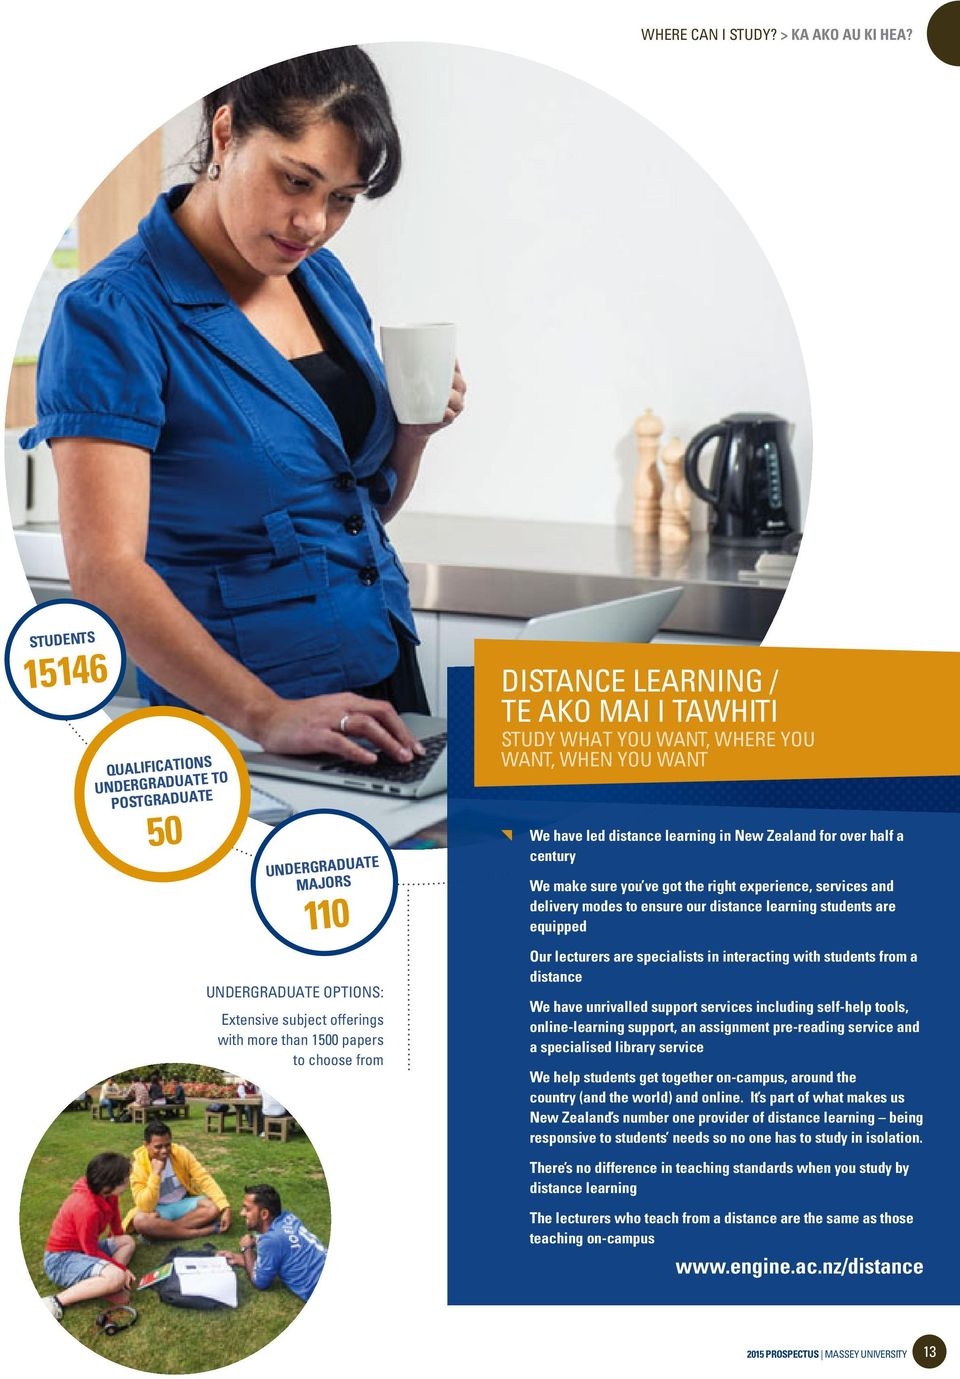 / TE AKO MAI I TAWHITI STUDY WHAT YOU WANT, WHERE YOU WANT, WHEN YOU WANT We have led distance learning in New Zealand for over half a century We make sure you ve got the right experience, services